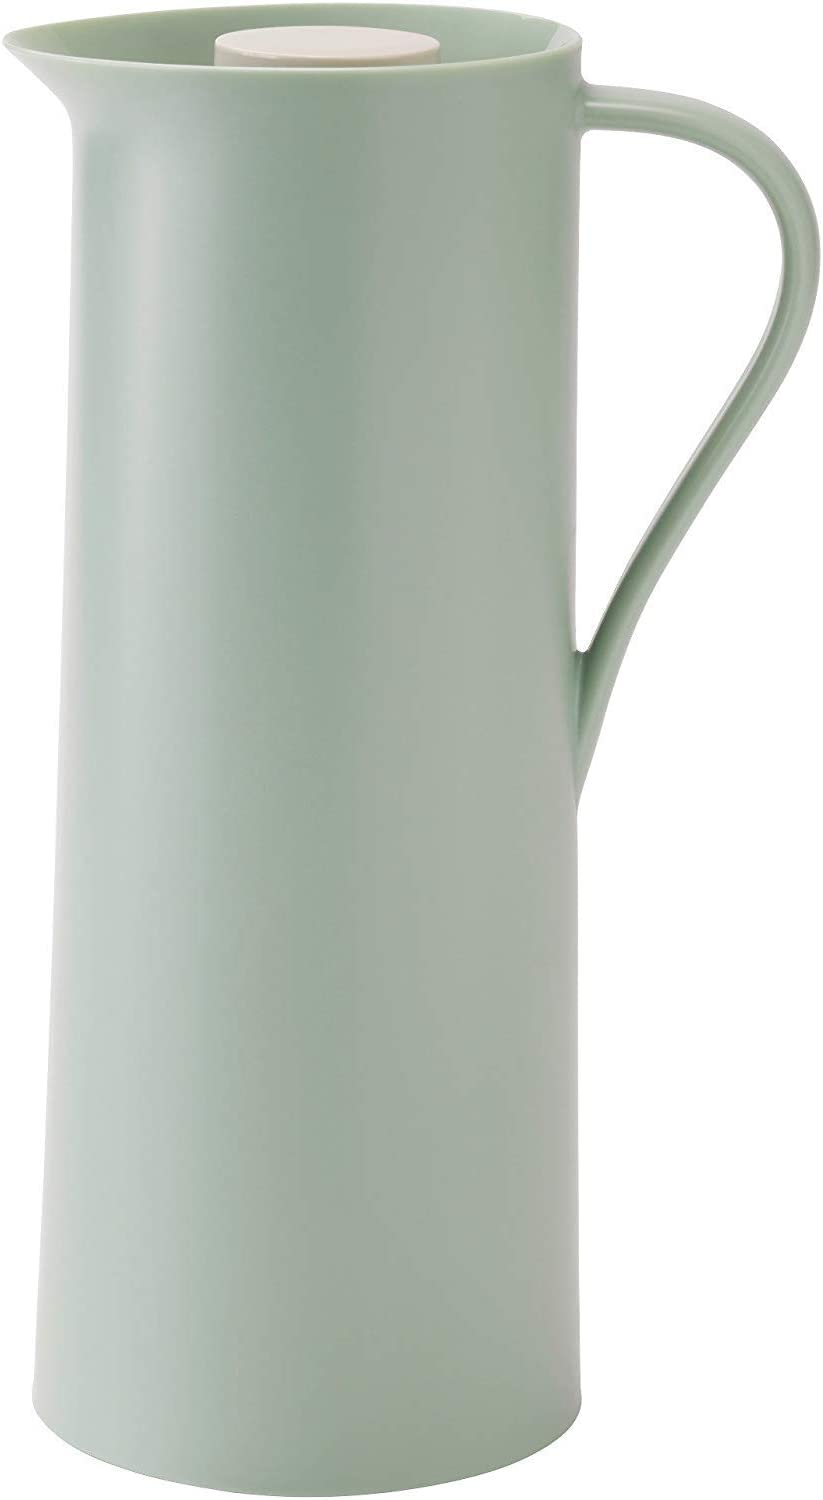 Ikea Behovd SEAL limited product San Diego Mall Vacuum Thermos Carafe